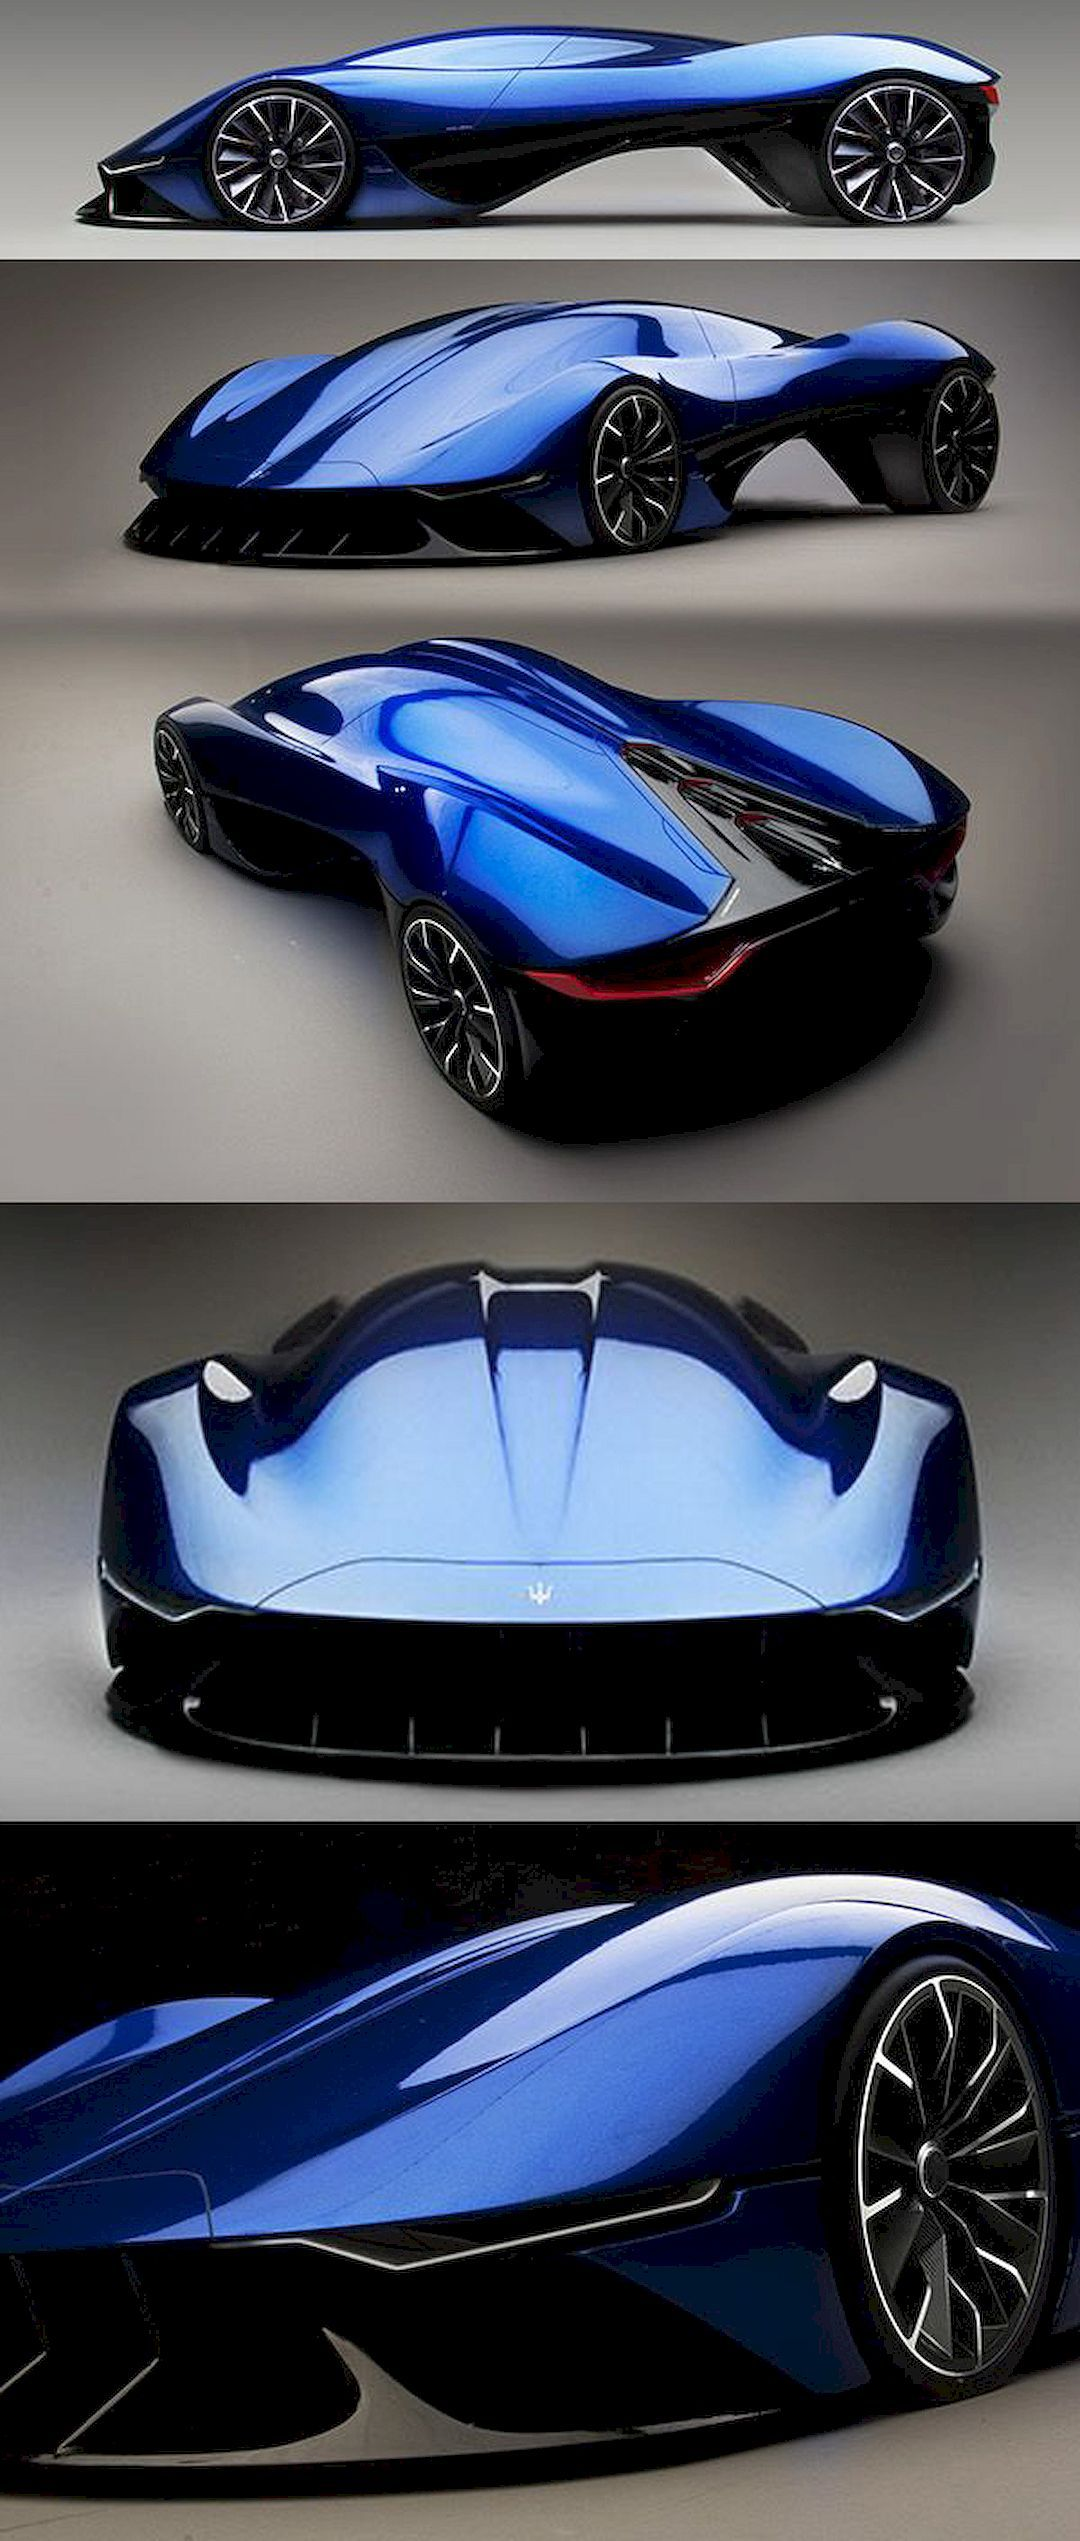 Top Upcoming Cars To Look Out For In 2020 Futuristic Cars Design Sports Cars Luxury Cool Sports Cars